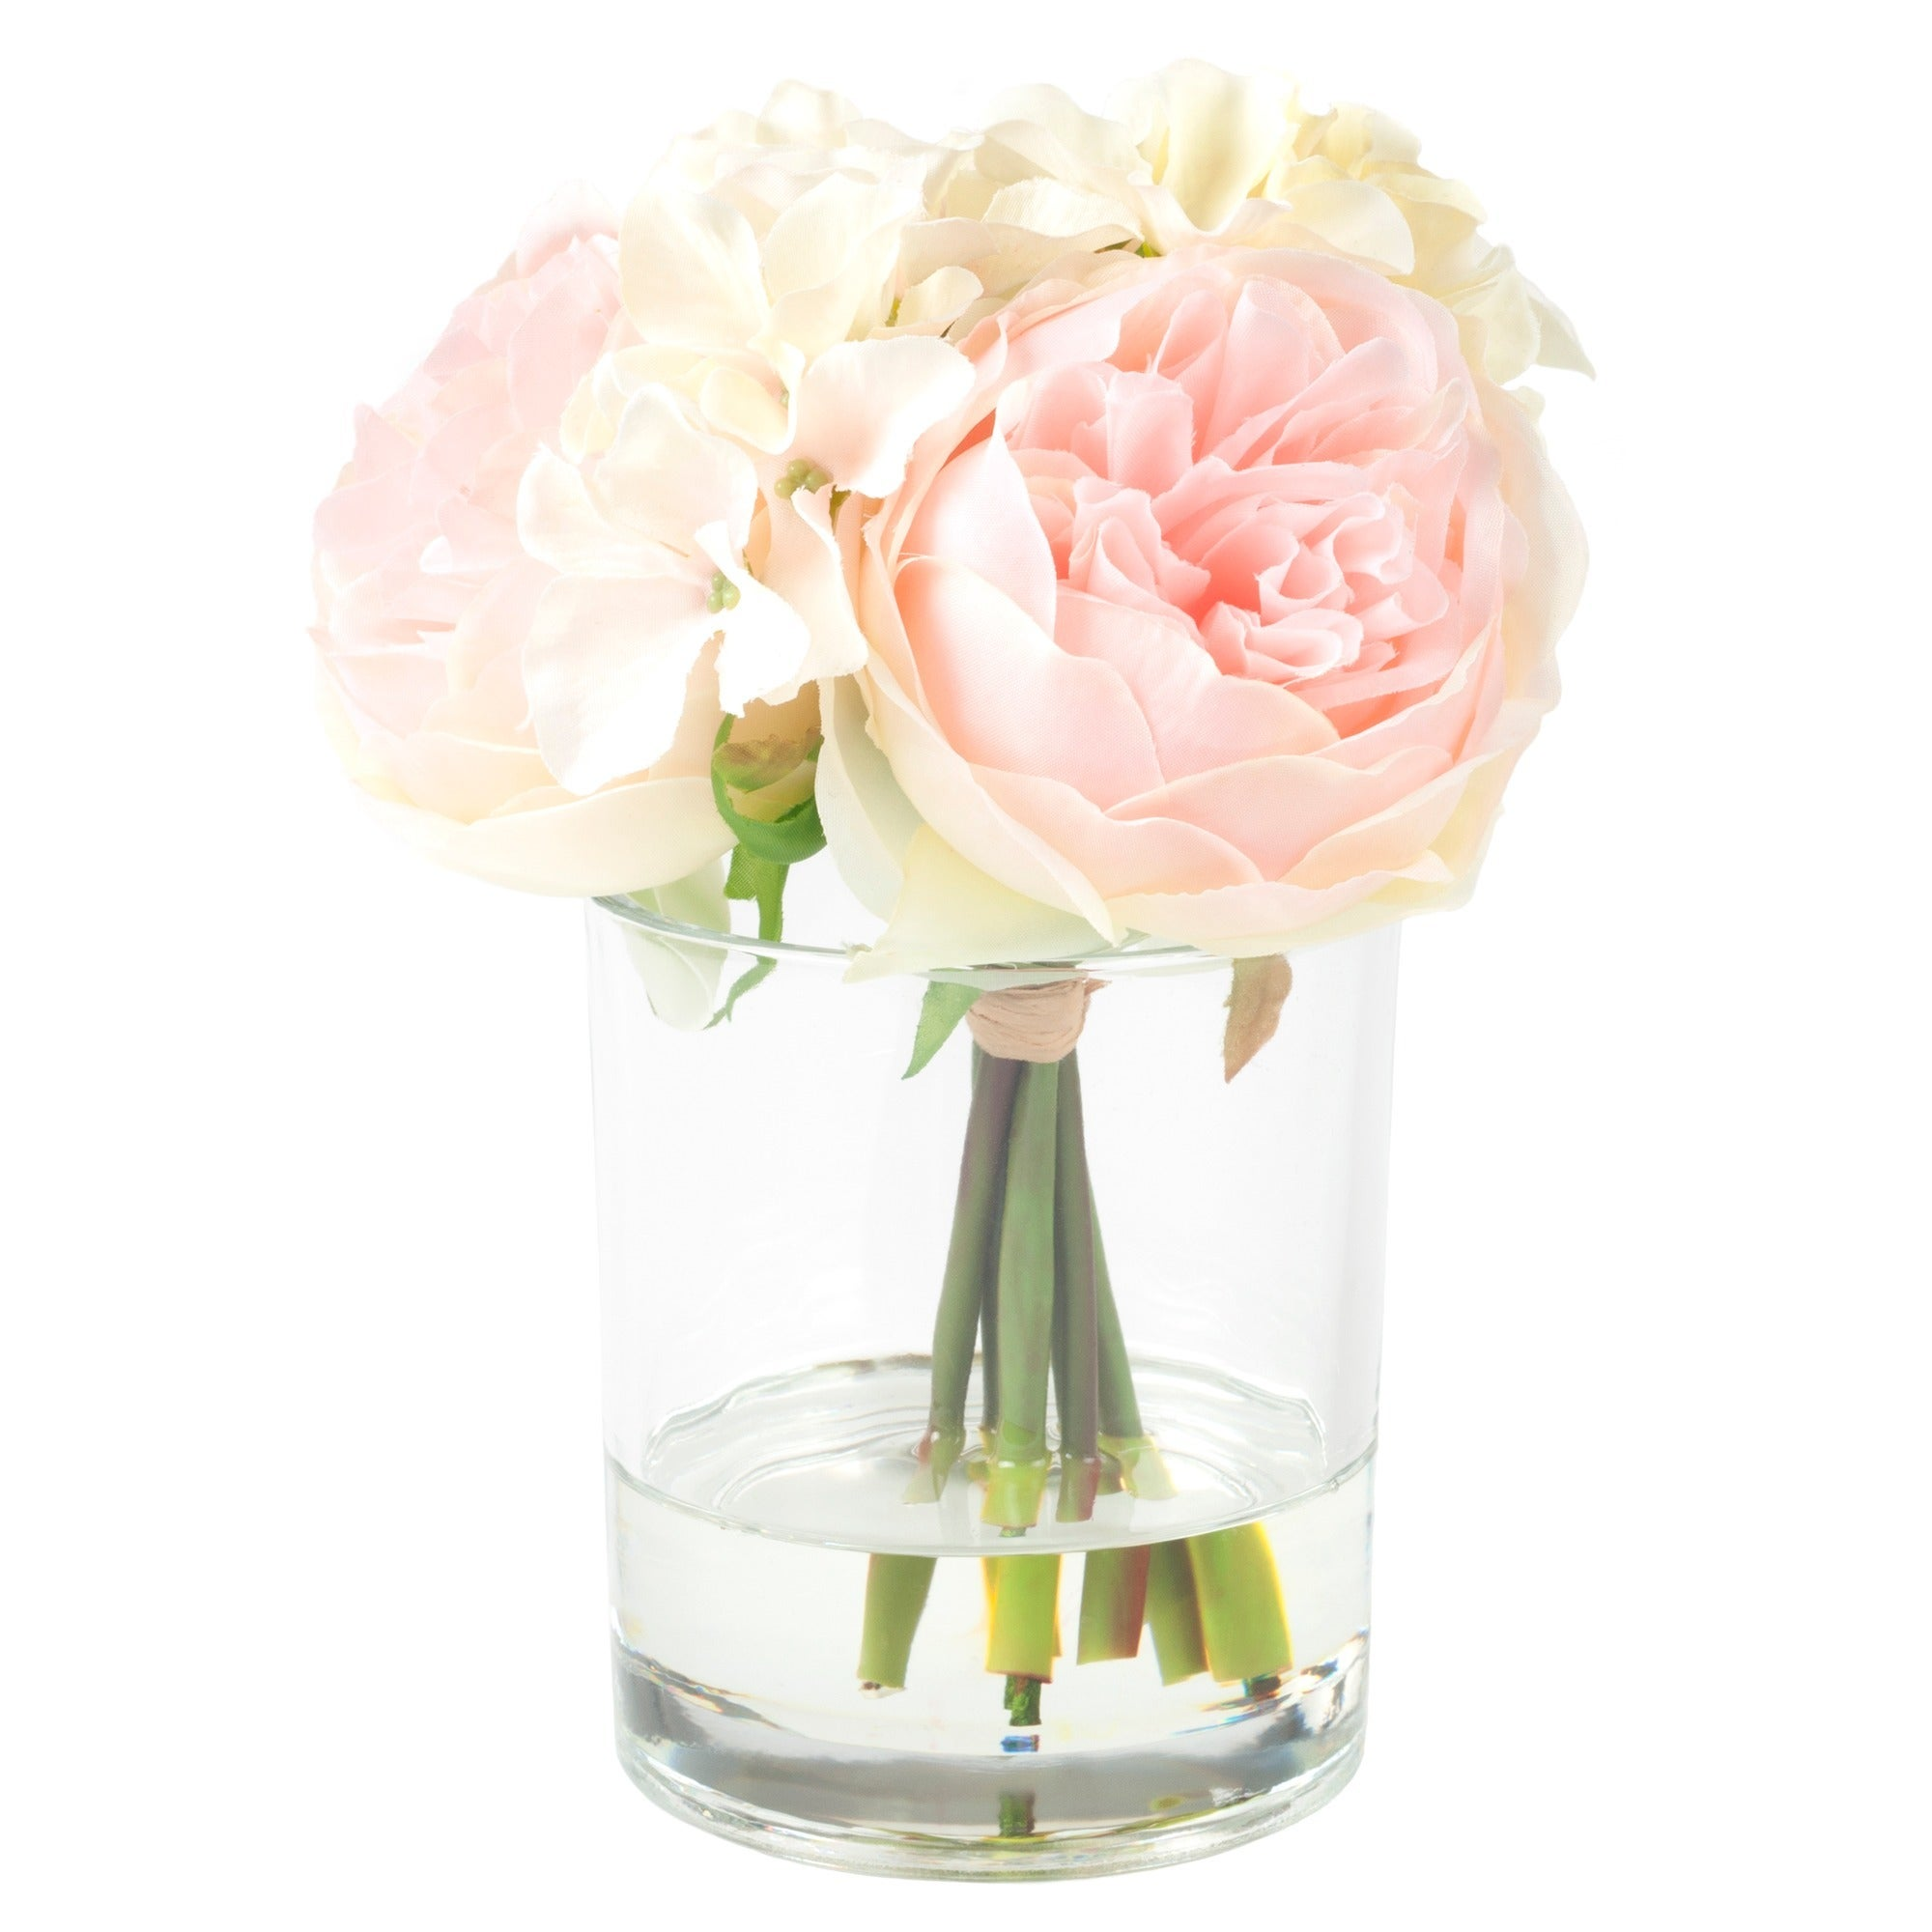 Bon Shop Pure Garden Hydrangea And Rose Floral Arrangement   Pink And Cream    Free Shipping On Orders Over $45   Overstock.com   12524505